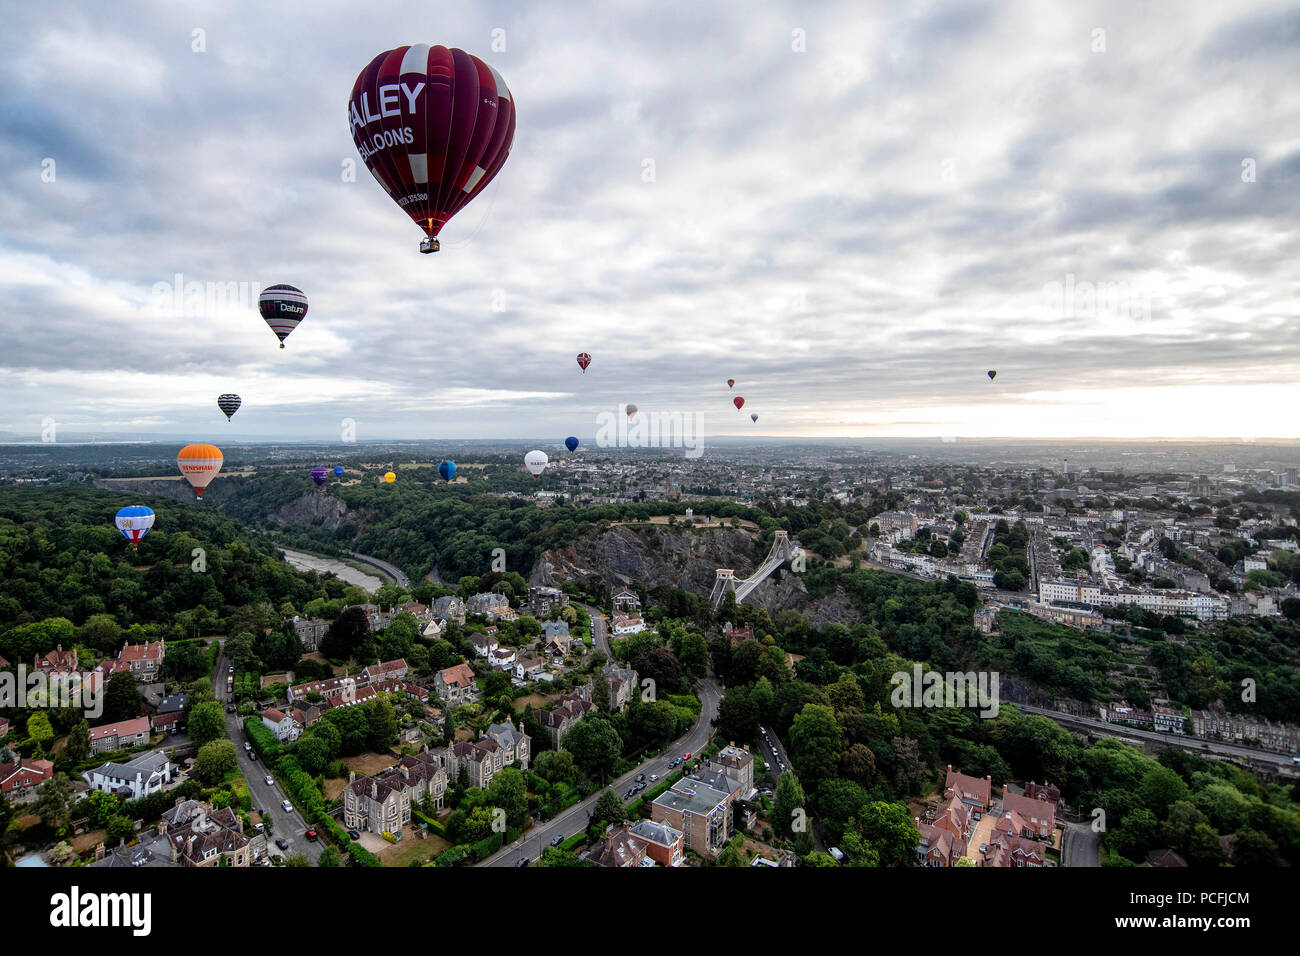 Hot air balloons above the Clifton Suspension Bridge during the press launch for the Bristol International Balloon Fiesta. - Stock Image